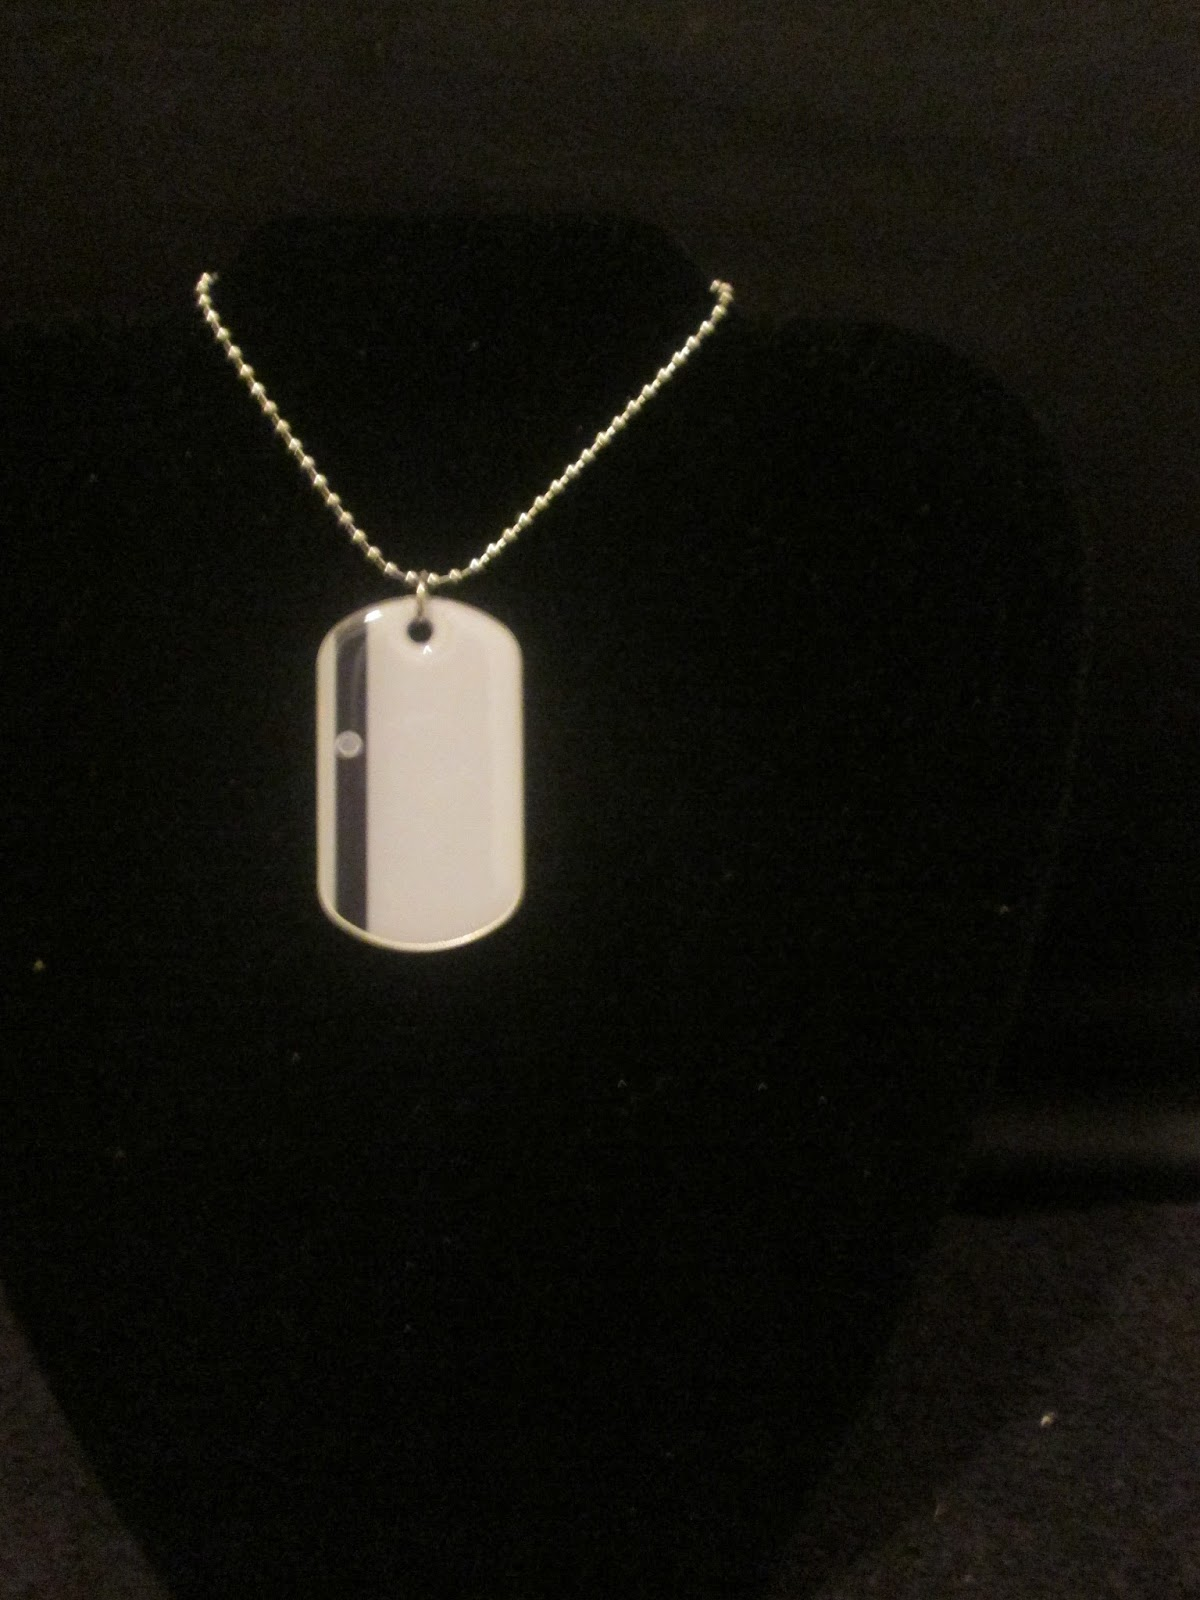 Stylish dog tag necklaces by Noneillah's Sean Cos Mason ...